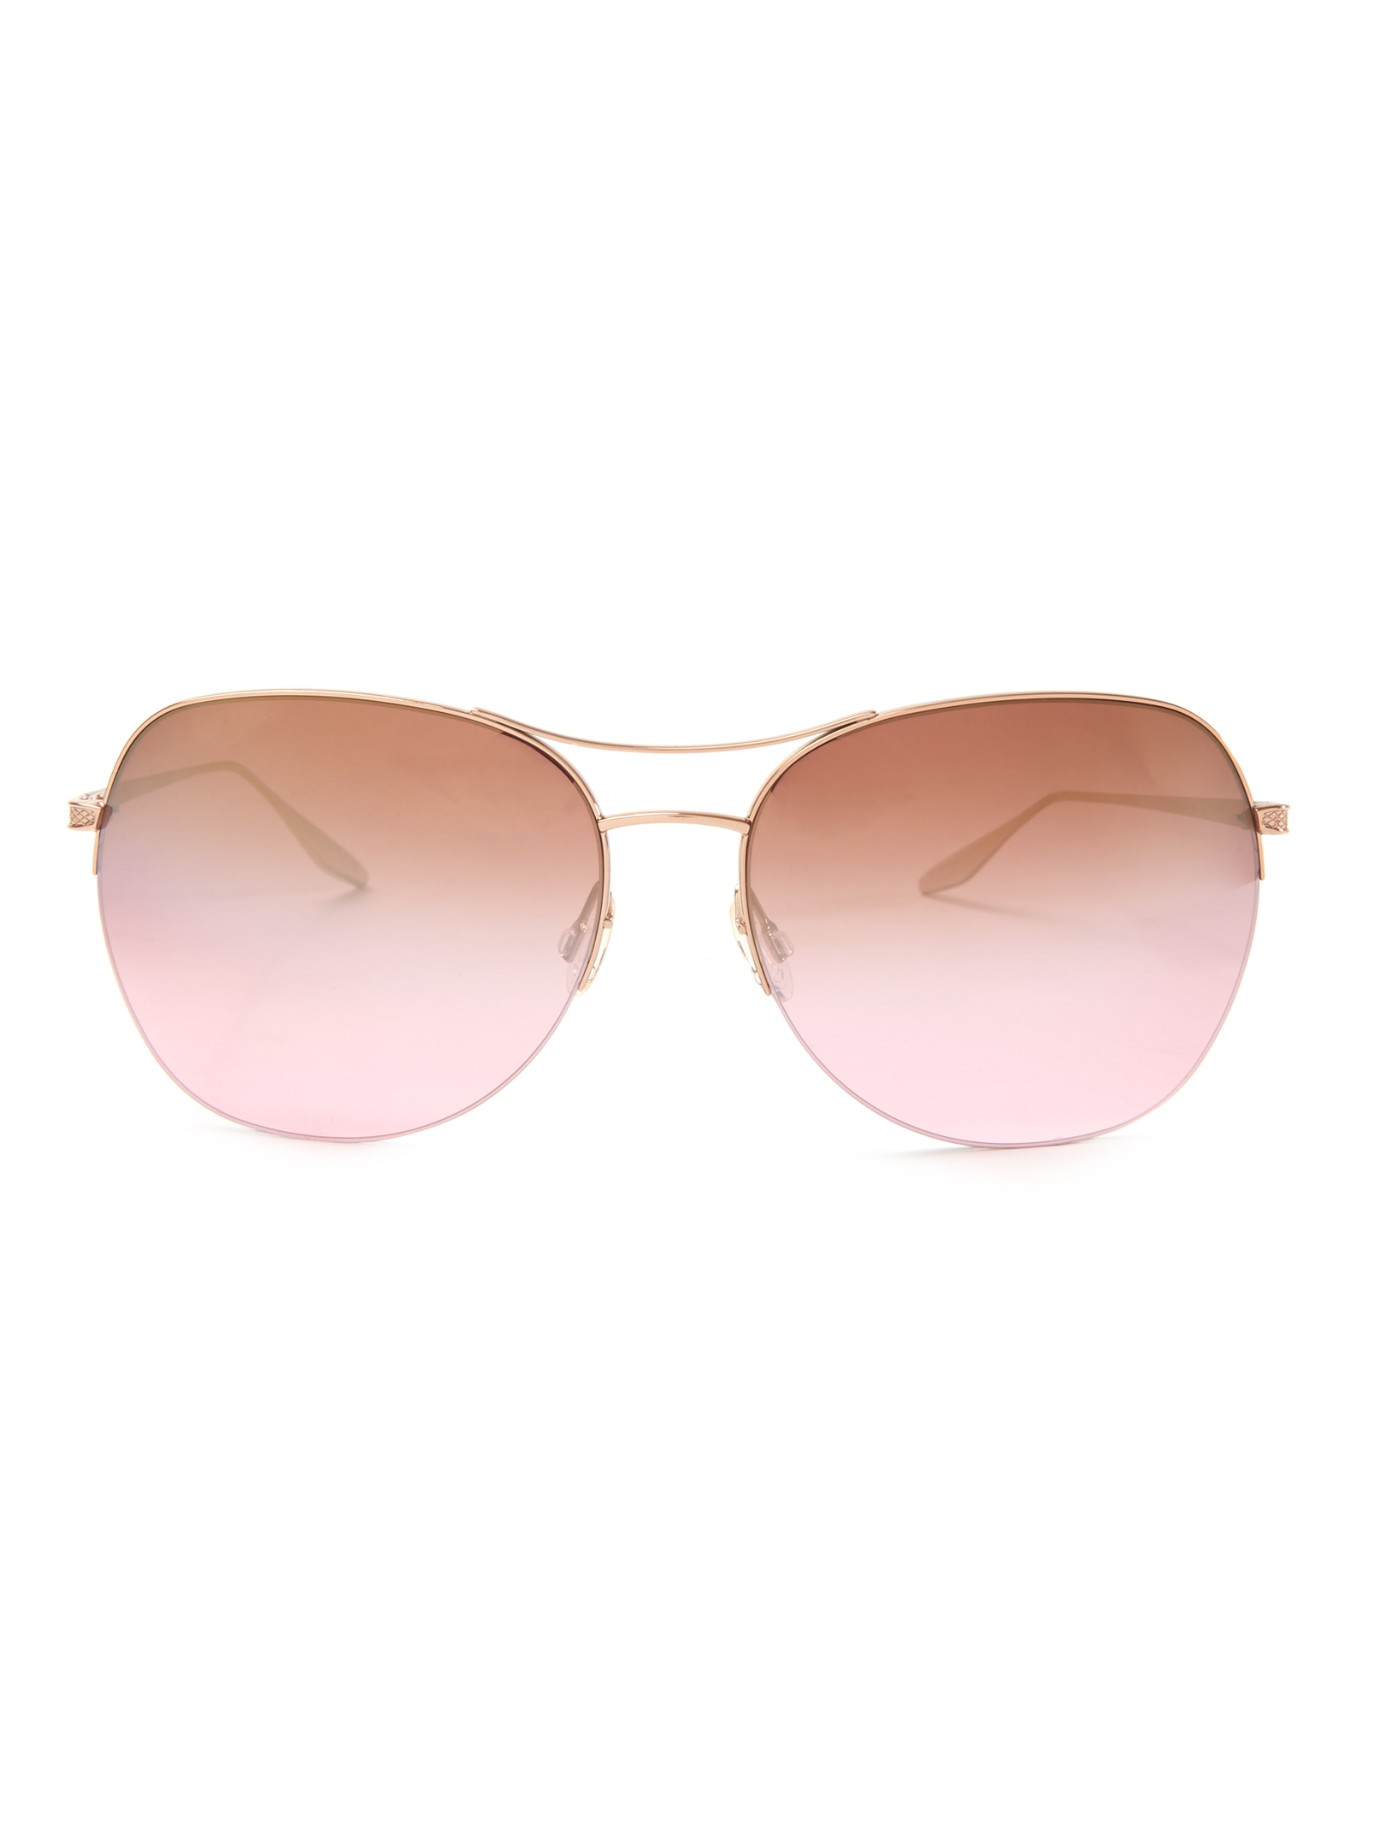 498d858ad1ac Lyst - Barton Perreira Quimby Aviator Sunglasses in Pink